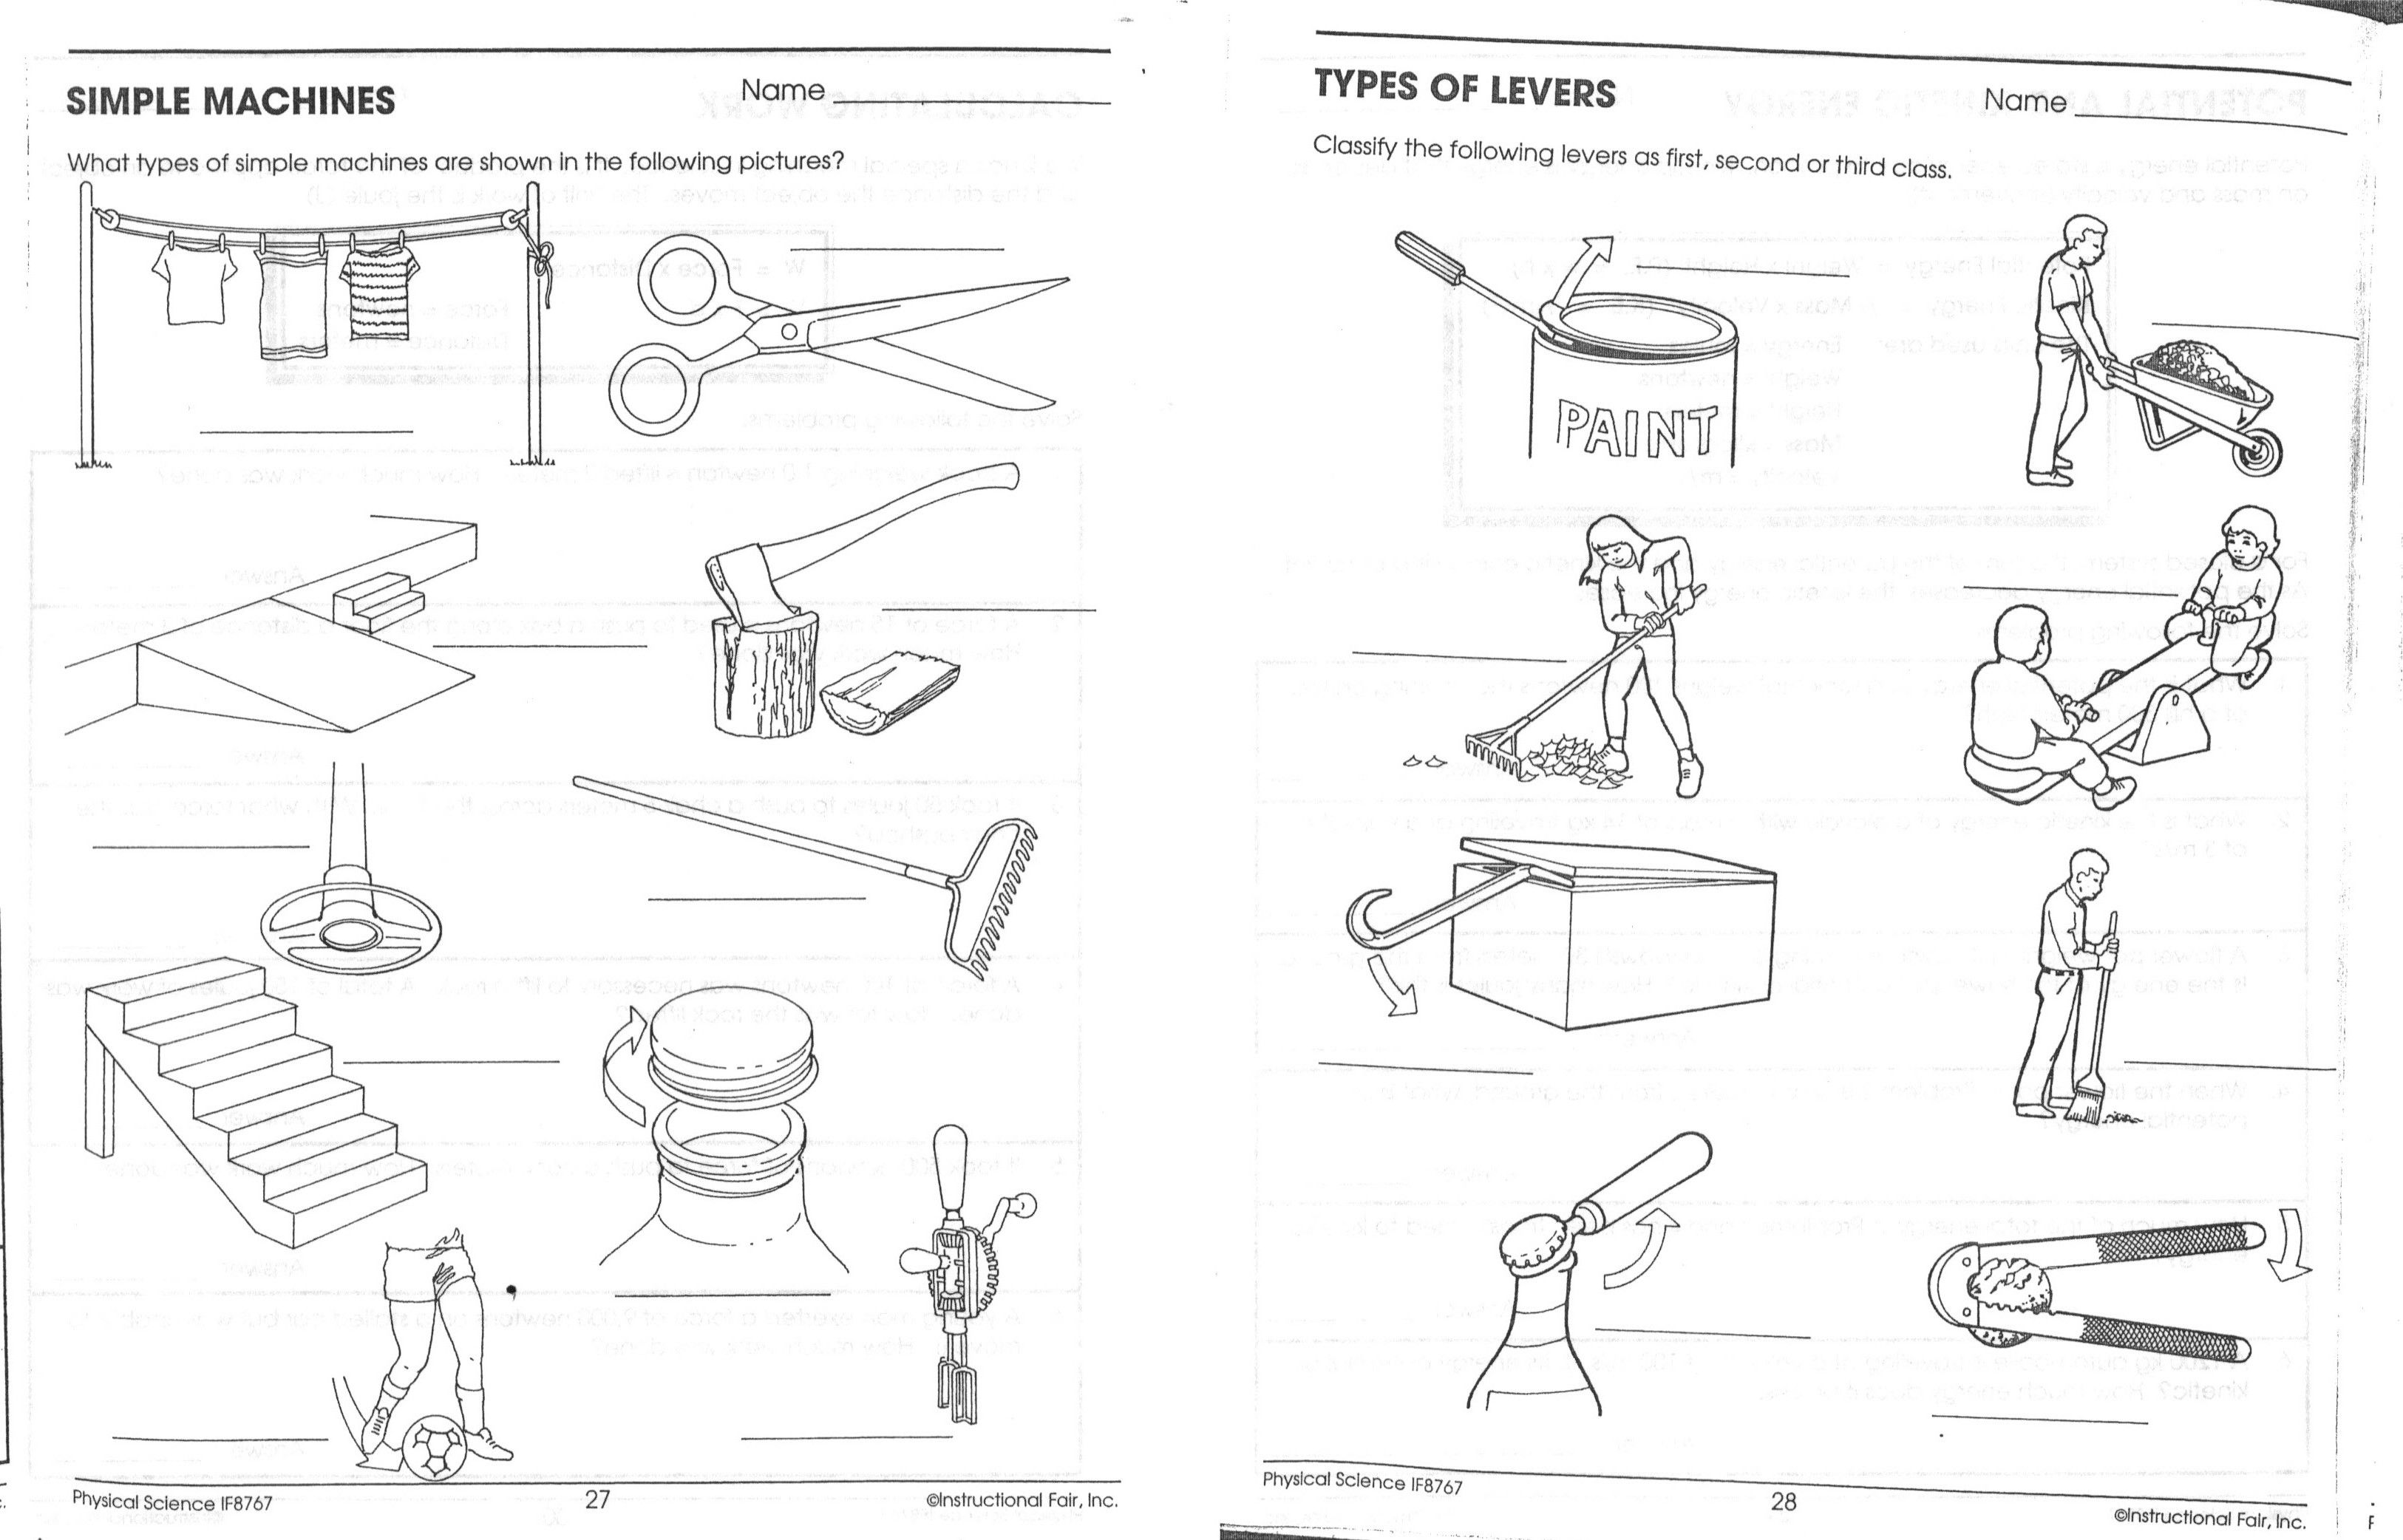 worksheet Physical Science If8767 Worksheet Answers pin by jennifer swindle on teaching pinterest kinetic energy simple machines physics worksheets school stuff schools physical science colleges